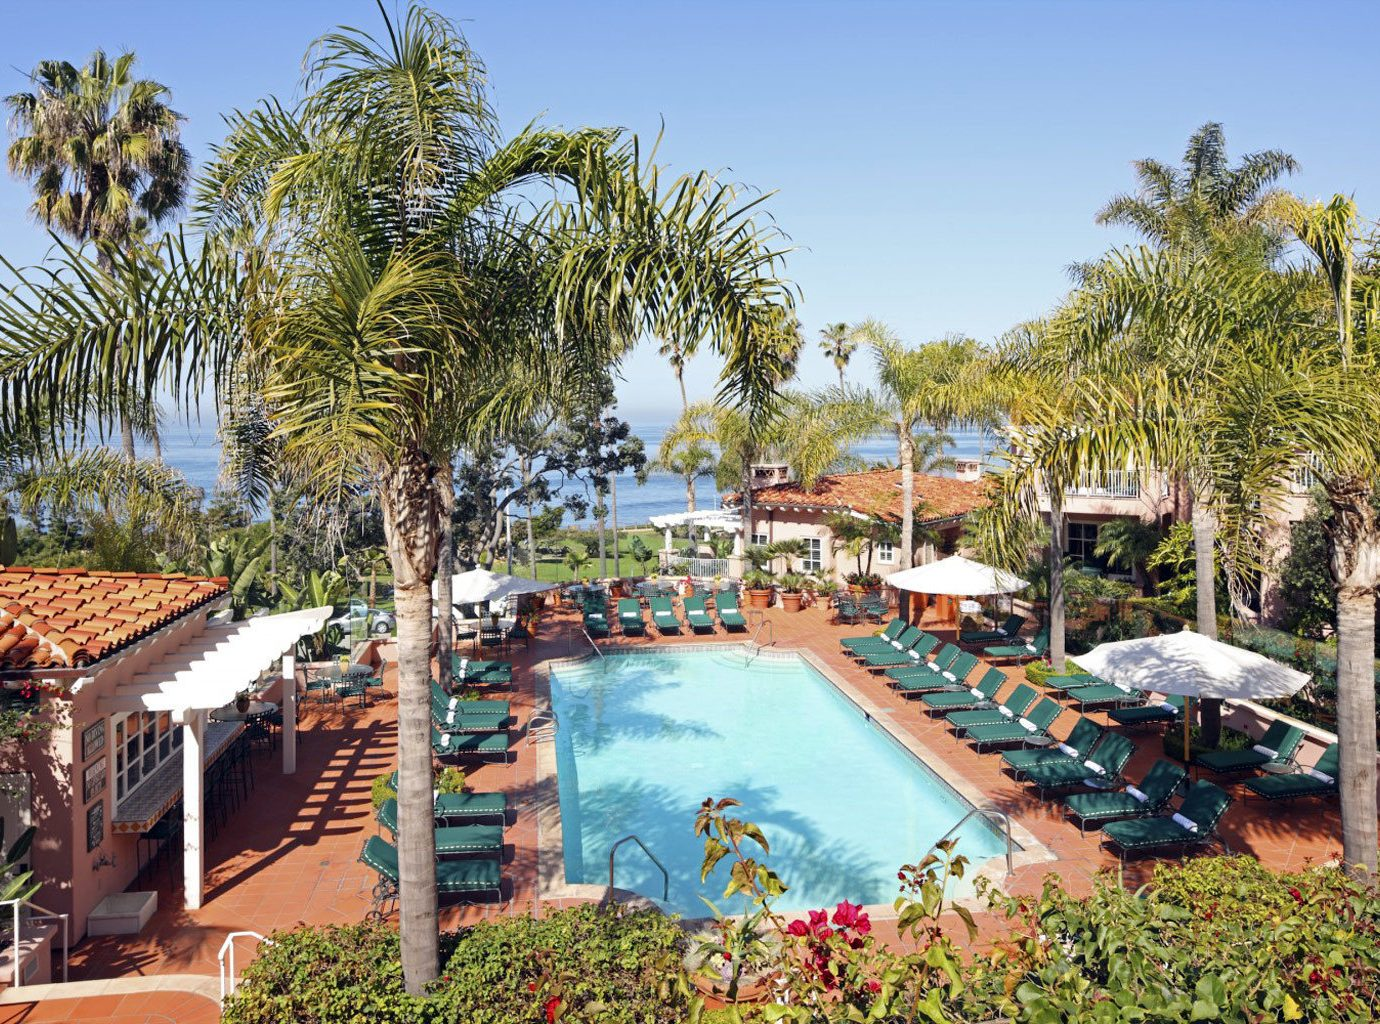 Outdoor Pool At La Valencia Hotel In San Diego, Ca, USA